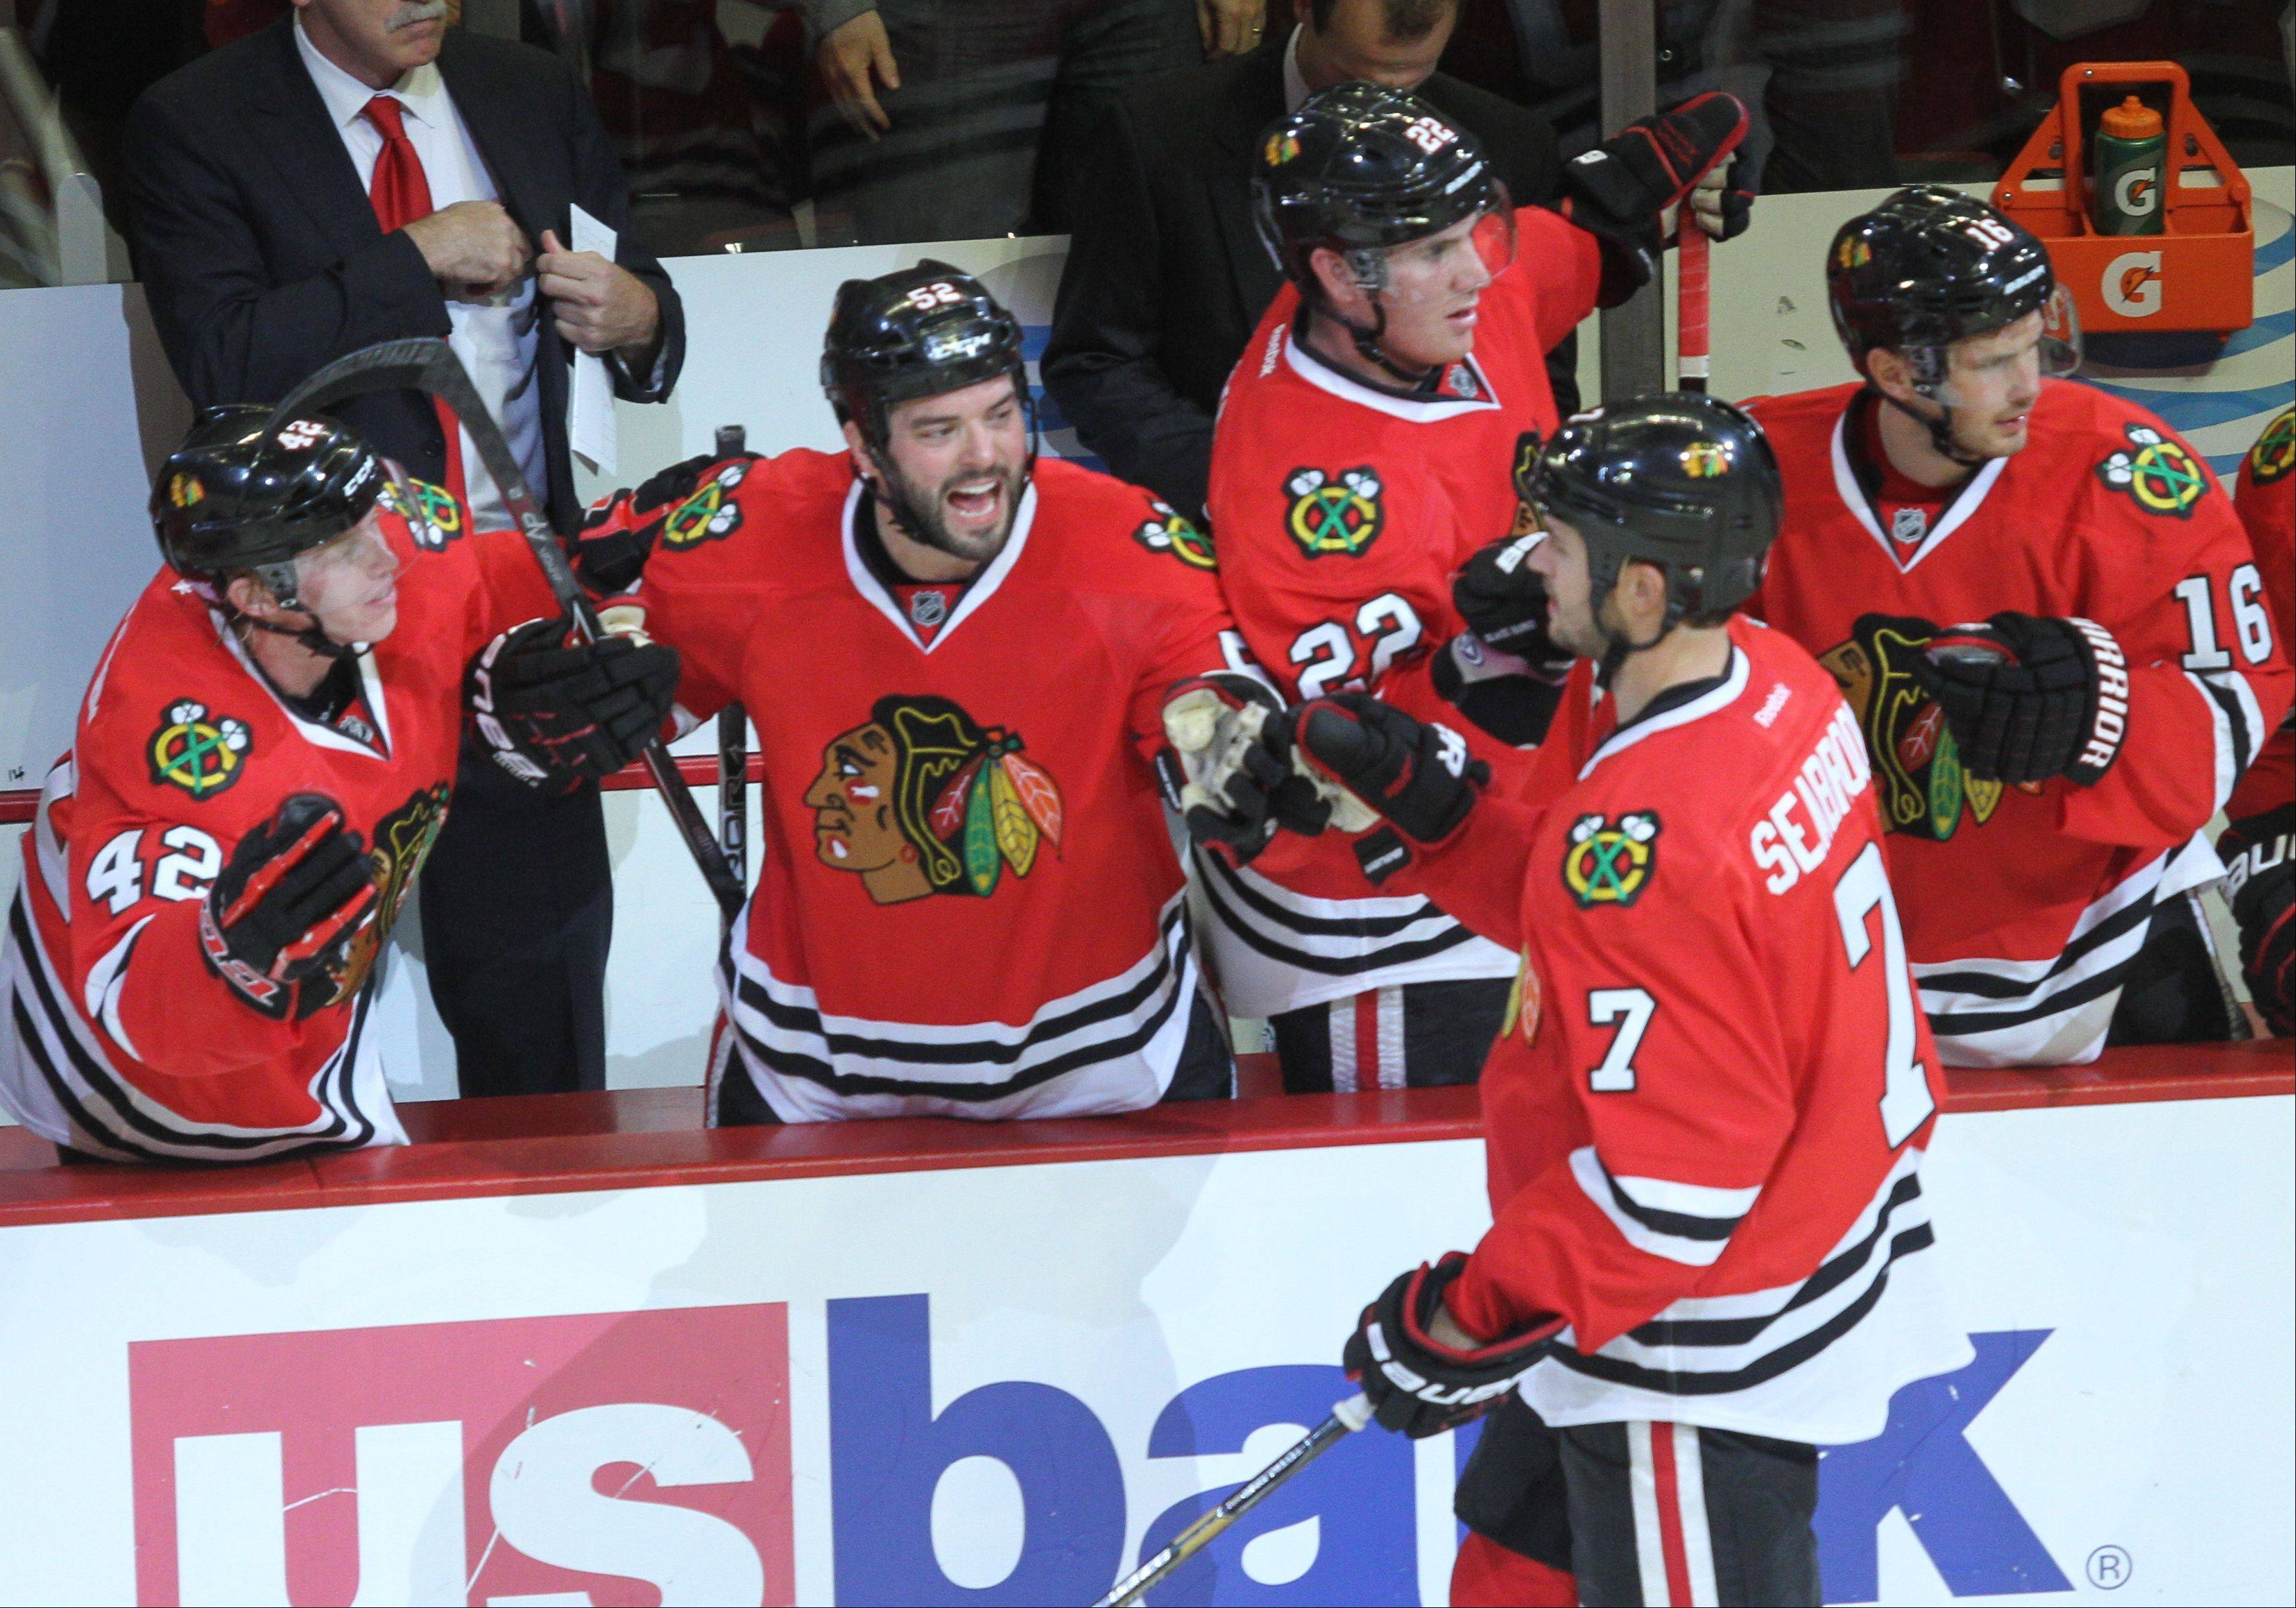 Chicago Blackhawks defenseman Brent Seabrook high-fives teammates after his goal.